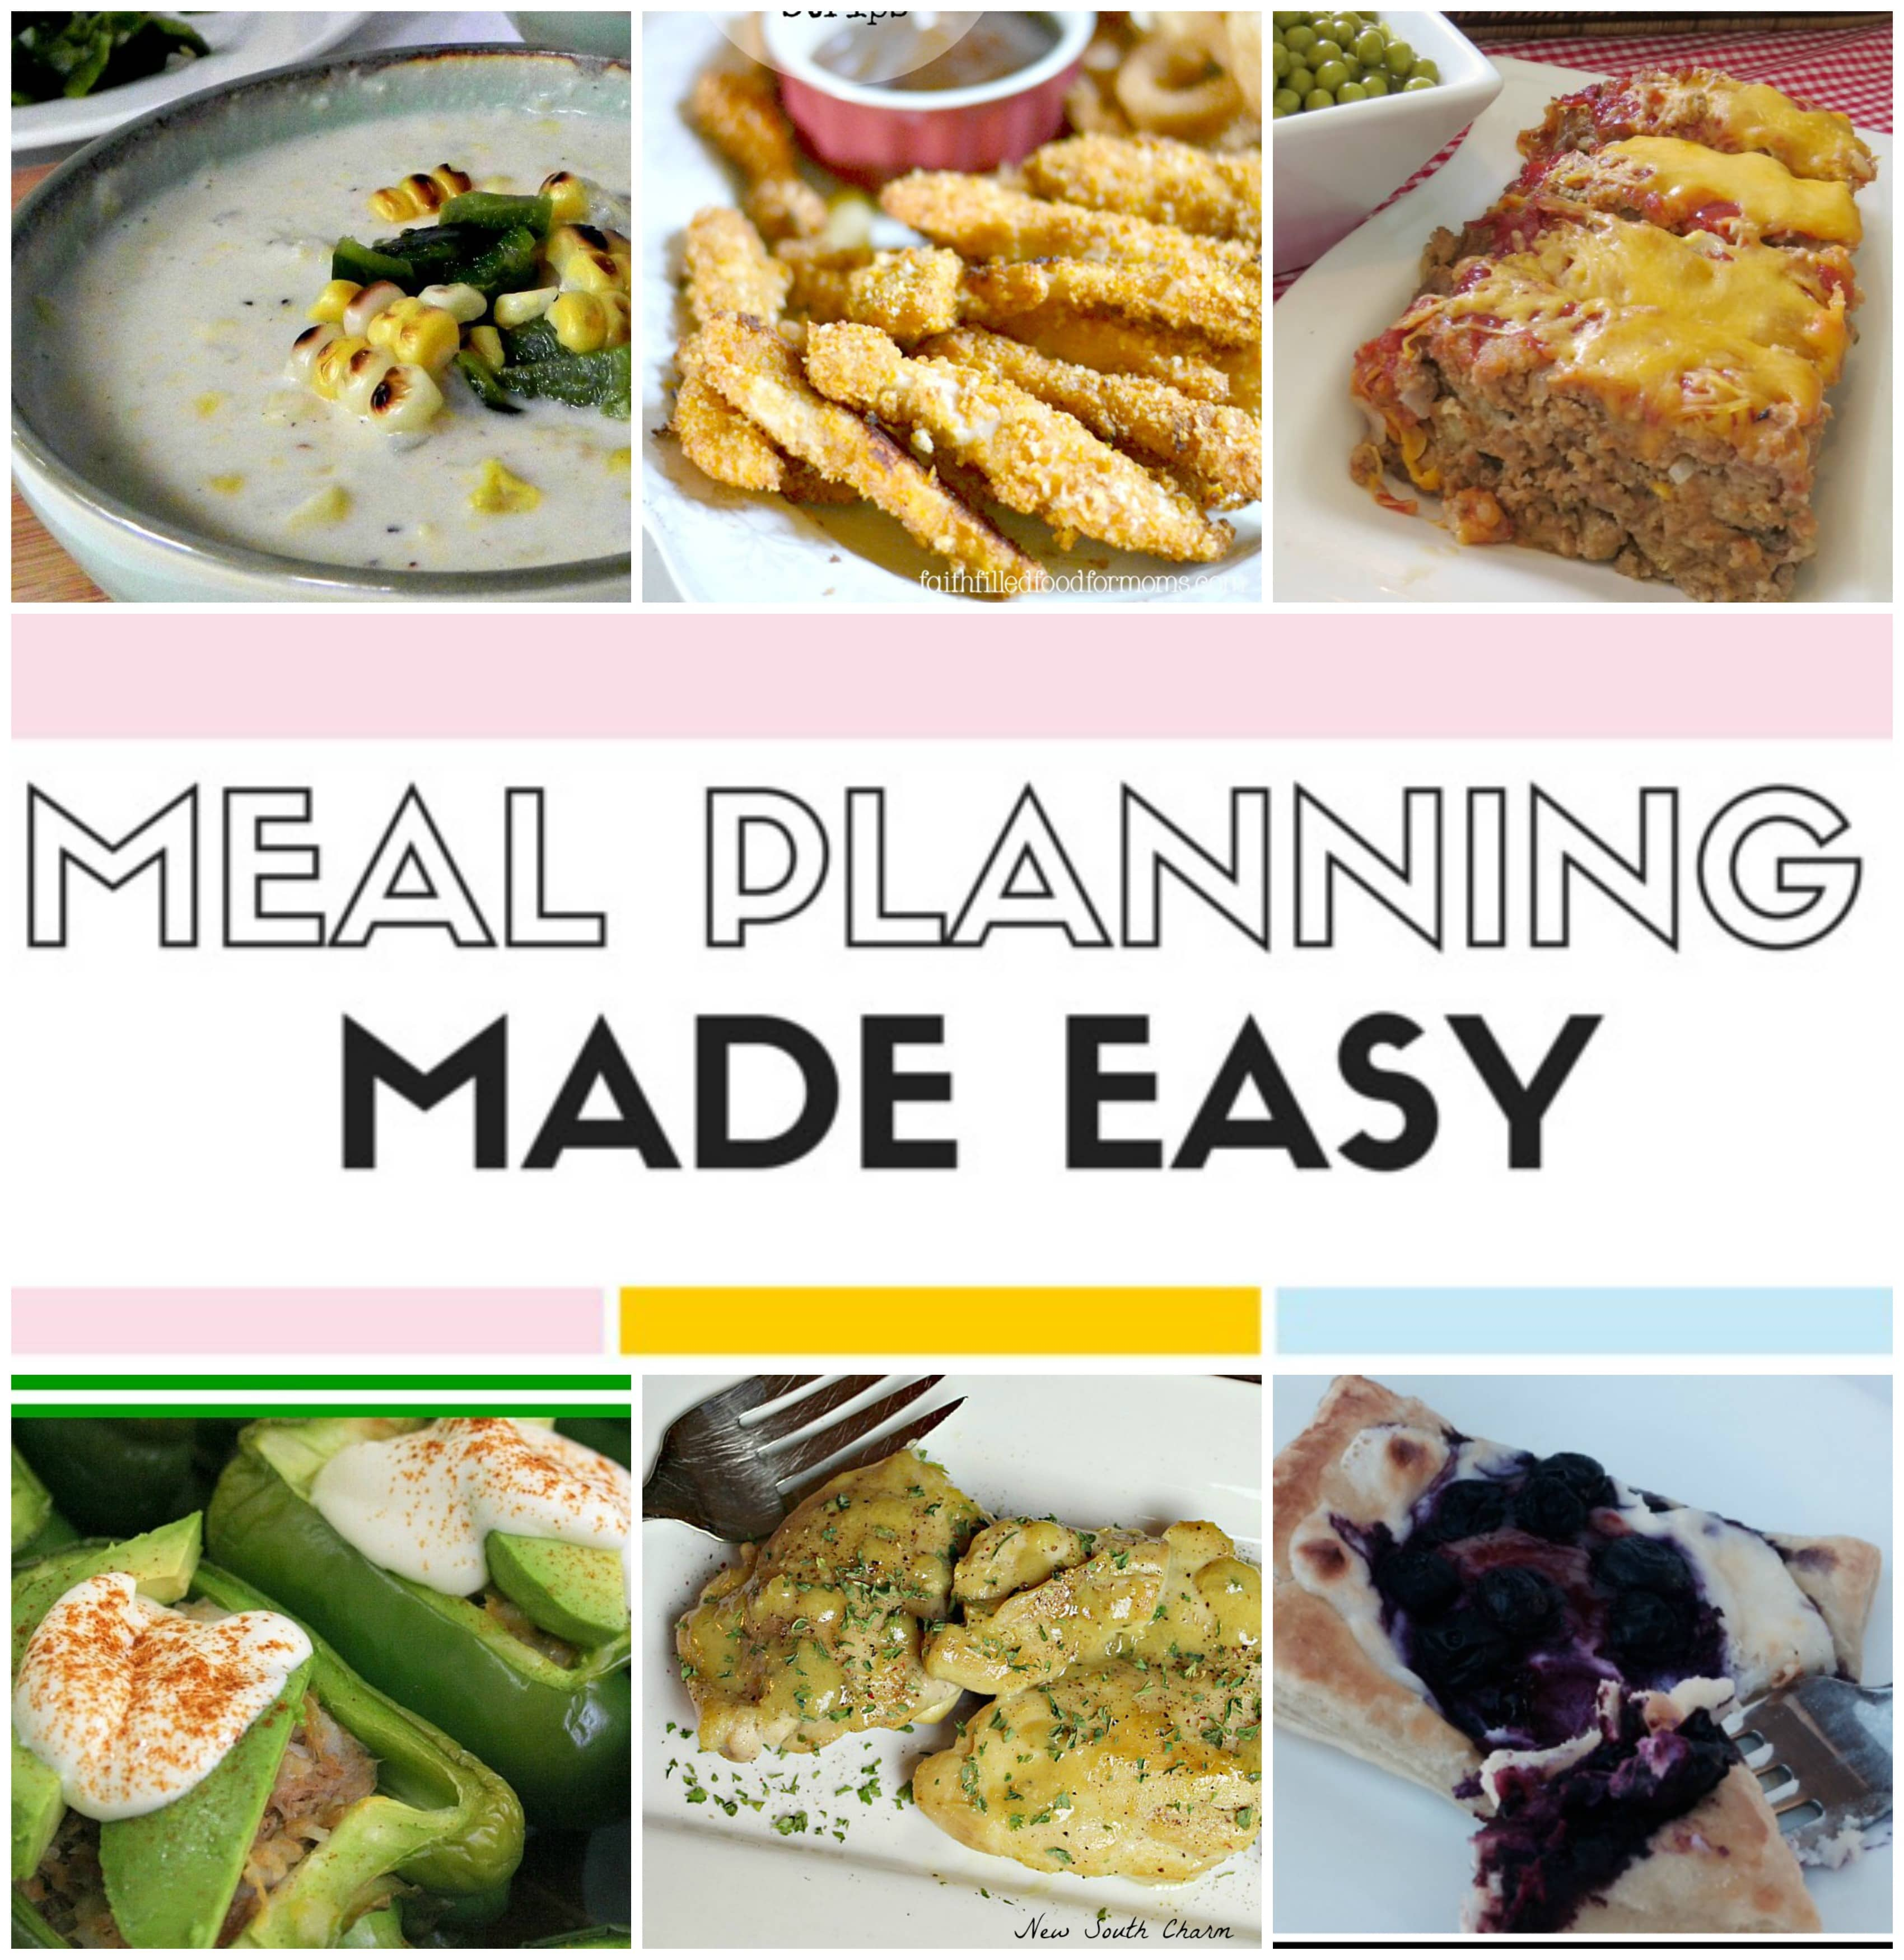 Meal Planning Made Easy Feb 27 – March 5